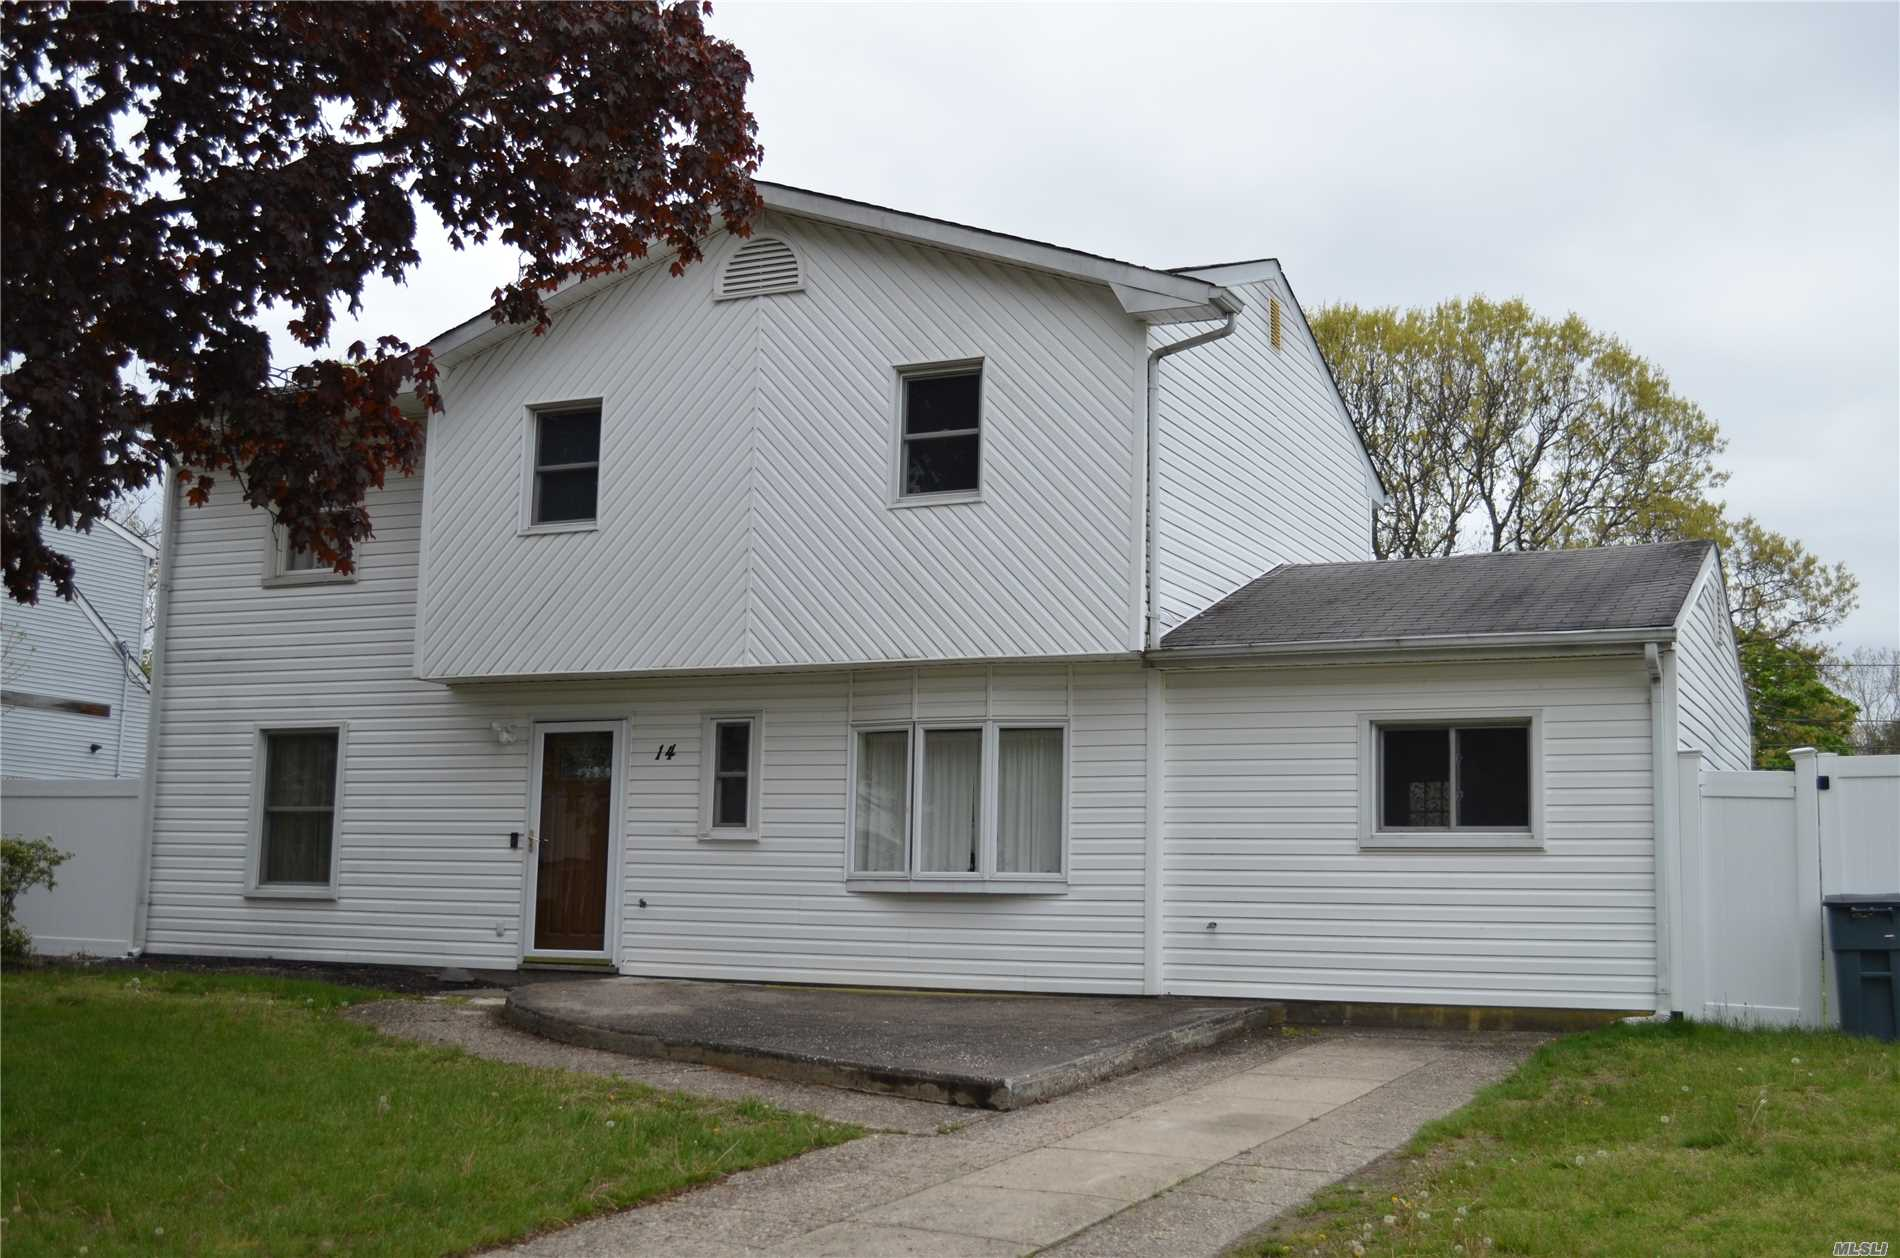 Spacious 3 to 4 Bedroom, 1.5 Bath Splanch Colonial. New Heating System, New Hot Water Heater, New Siding and Front PVC Fence, Updated Bath, Upgraded Panel and New High Hats, Some New Wood-Like Flooring, In-Ground Pool